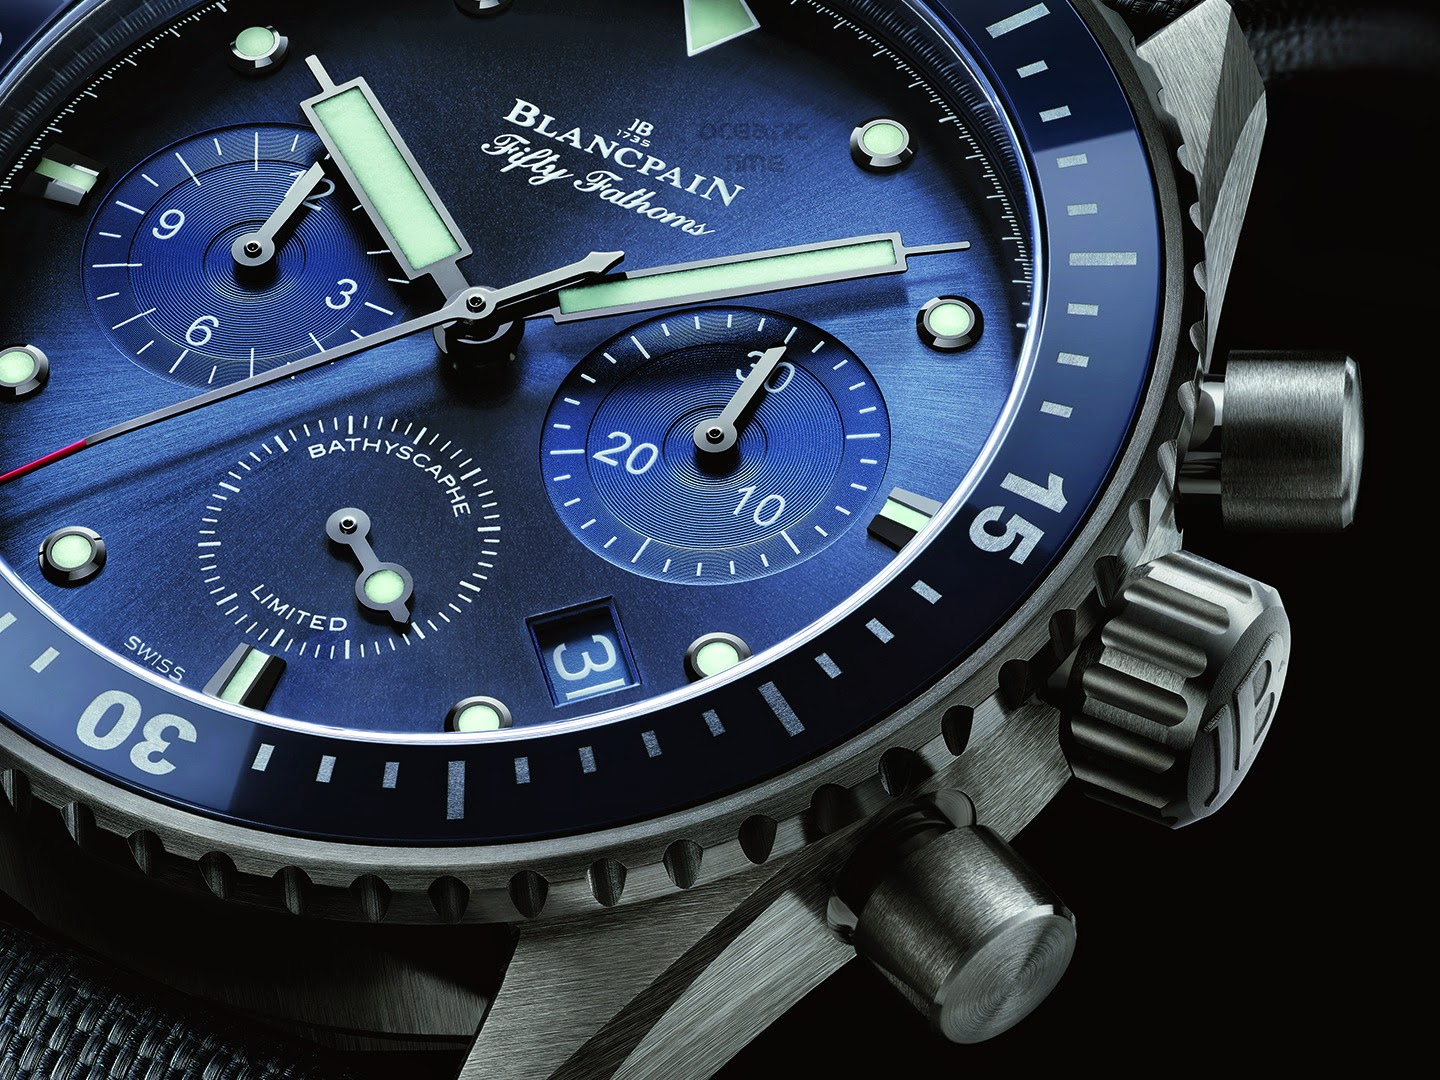 Expensive Blancpain Watches For Men